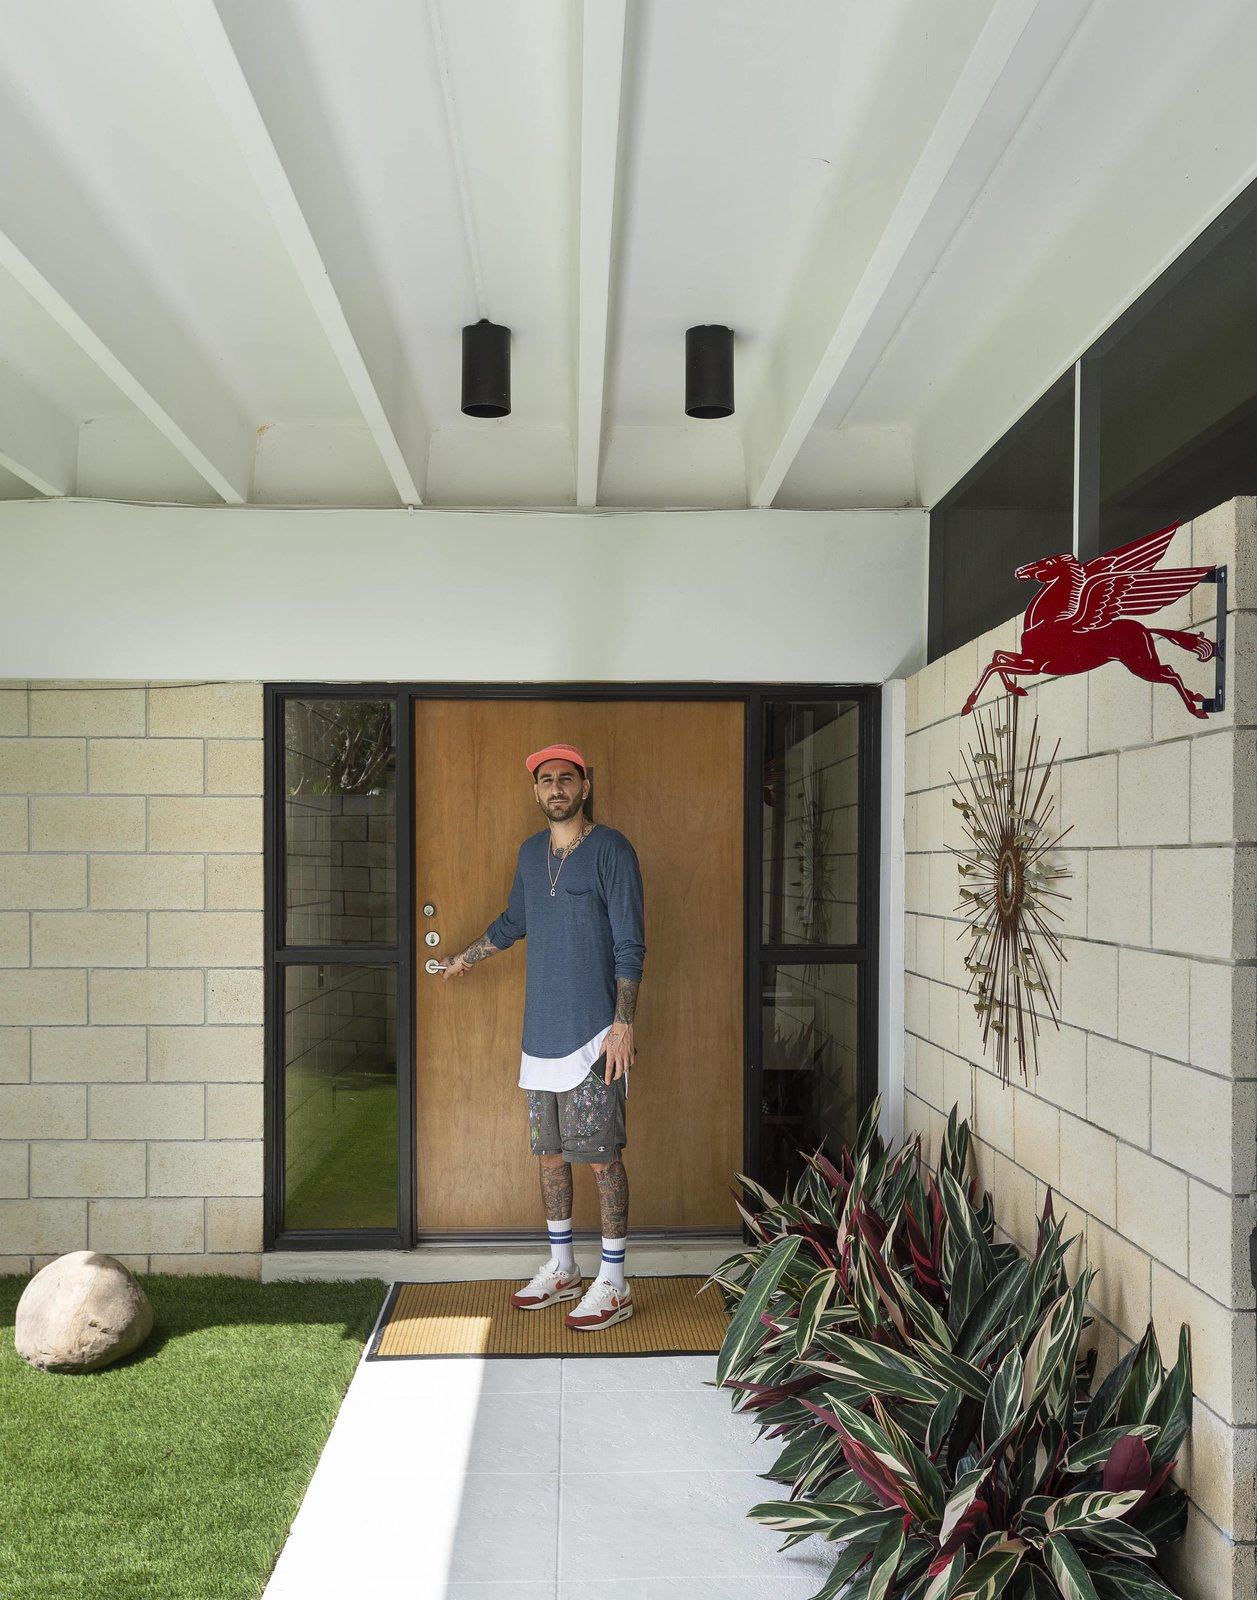 My House: Street Artist Flore's Unlikely Midcentury Haven in Florida